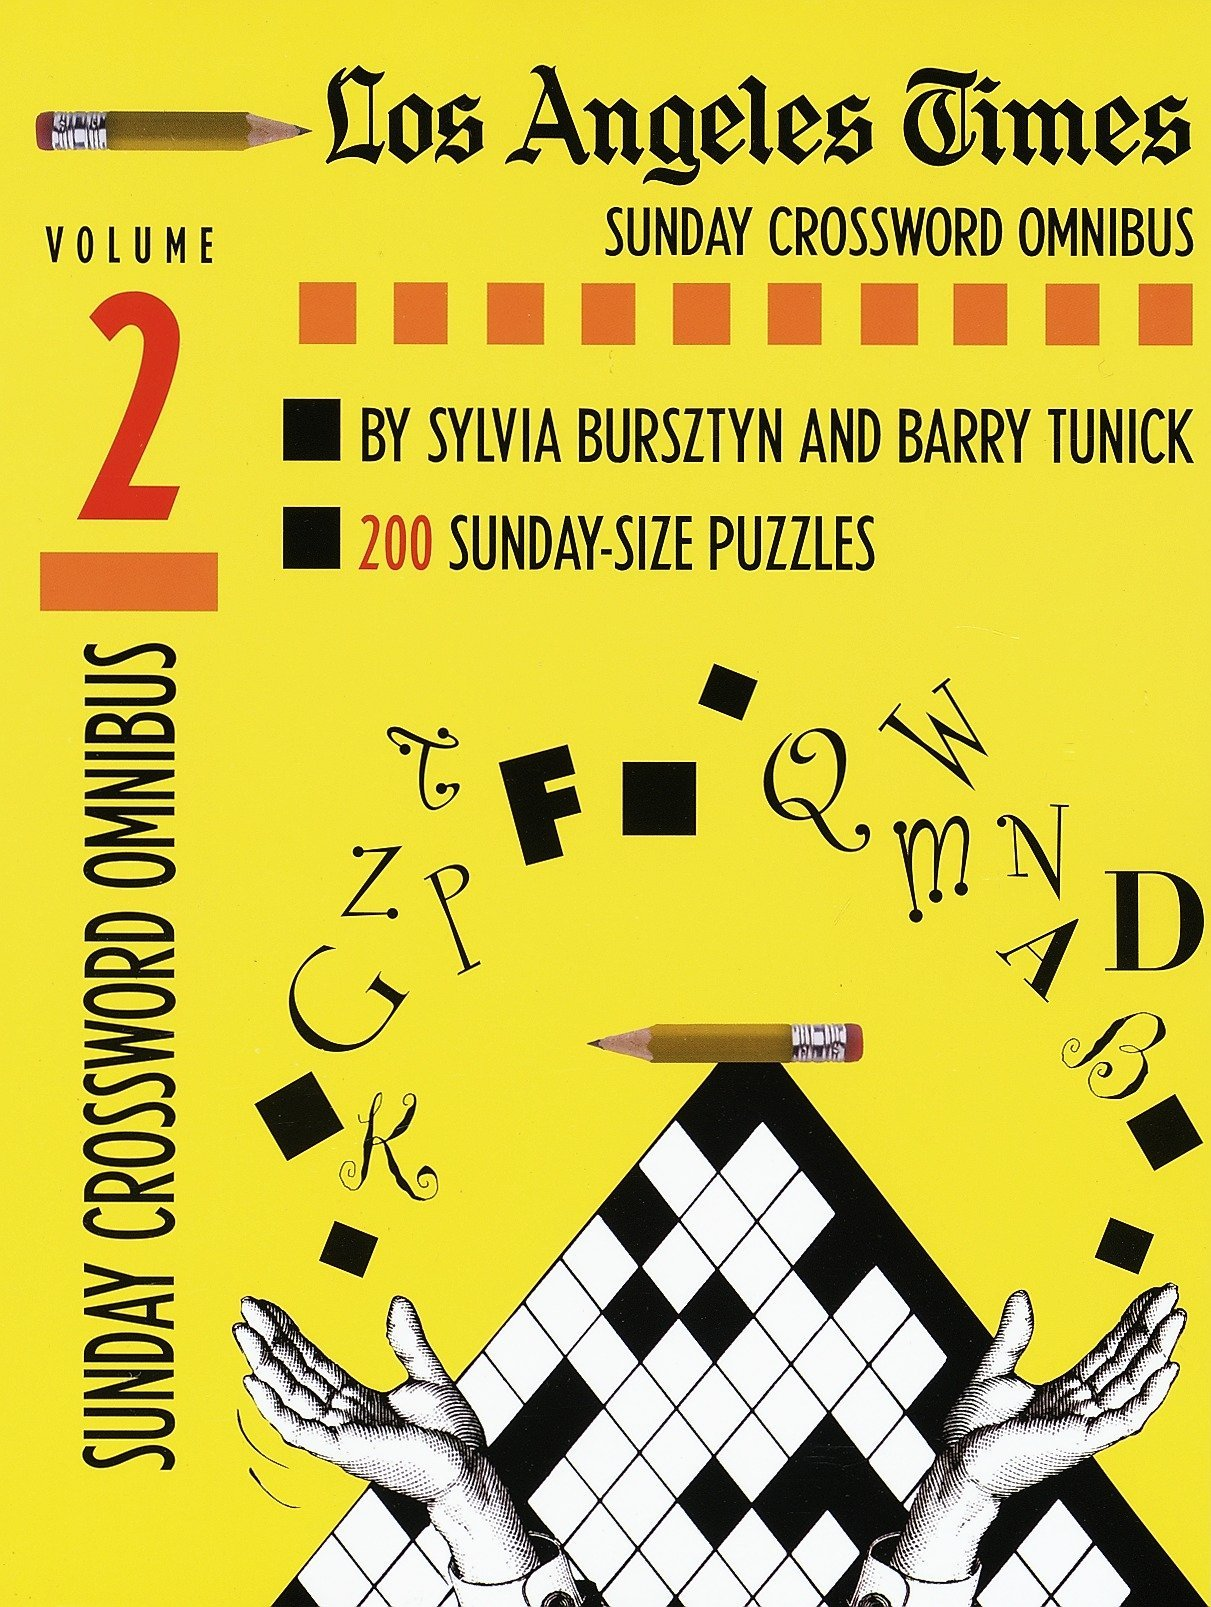 Los Angeles Times Sunday Crossword Omnibus Volume 2 The Los